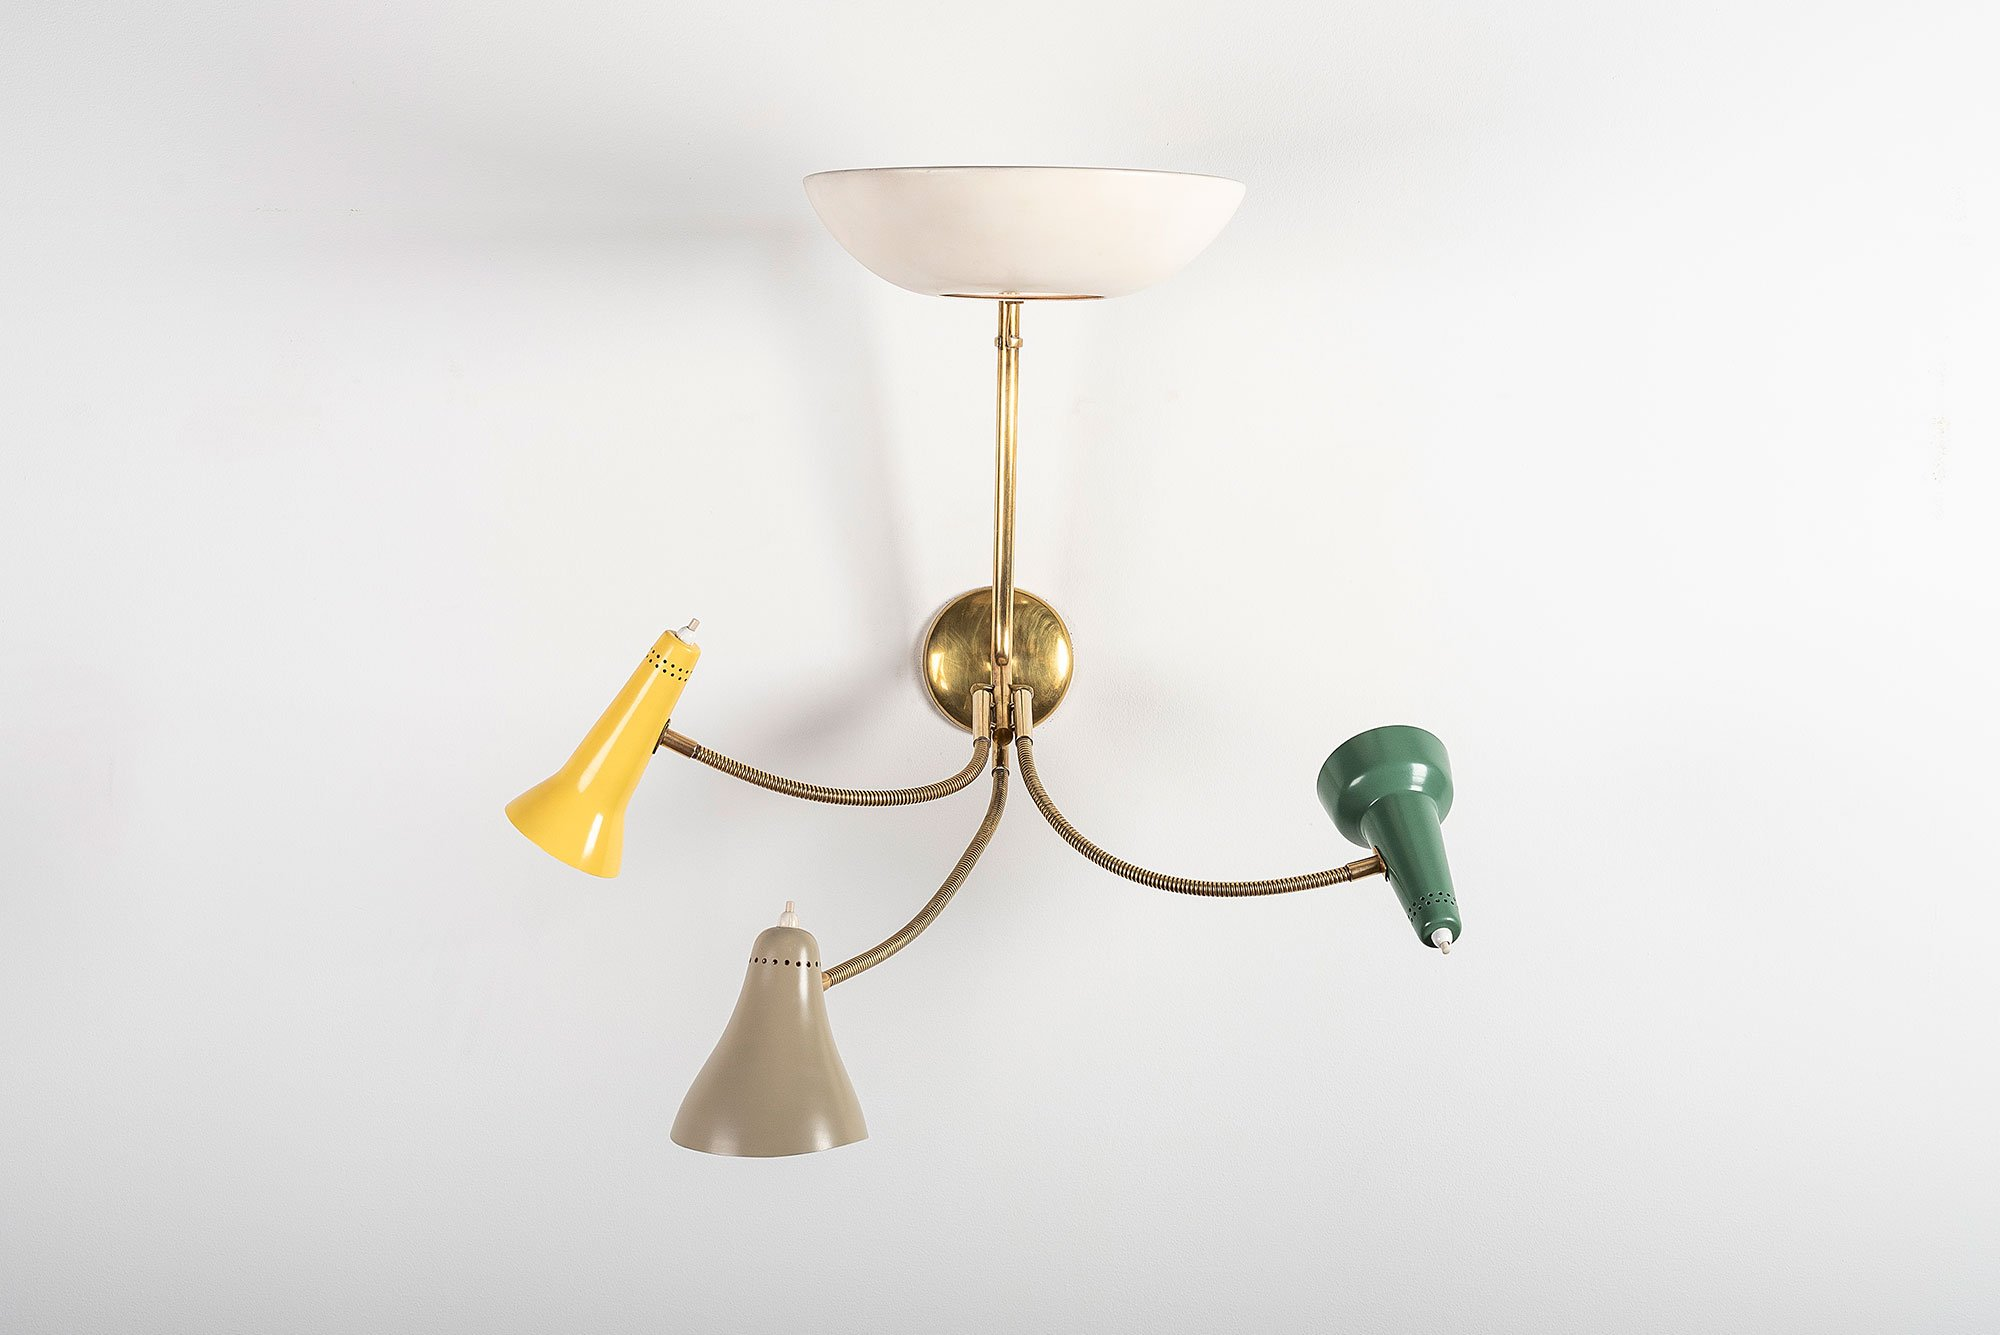 Gino Sarfatti |   Wall light model 179